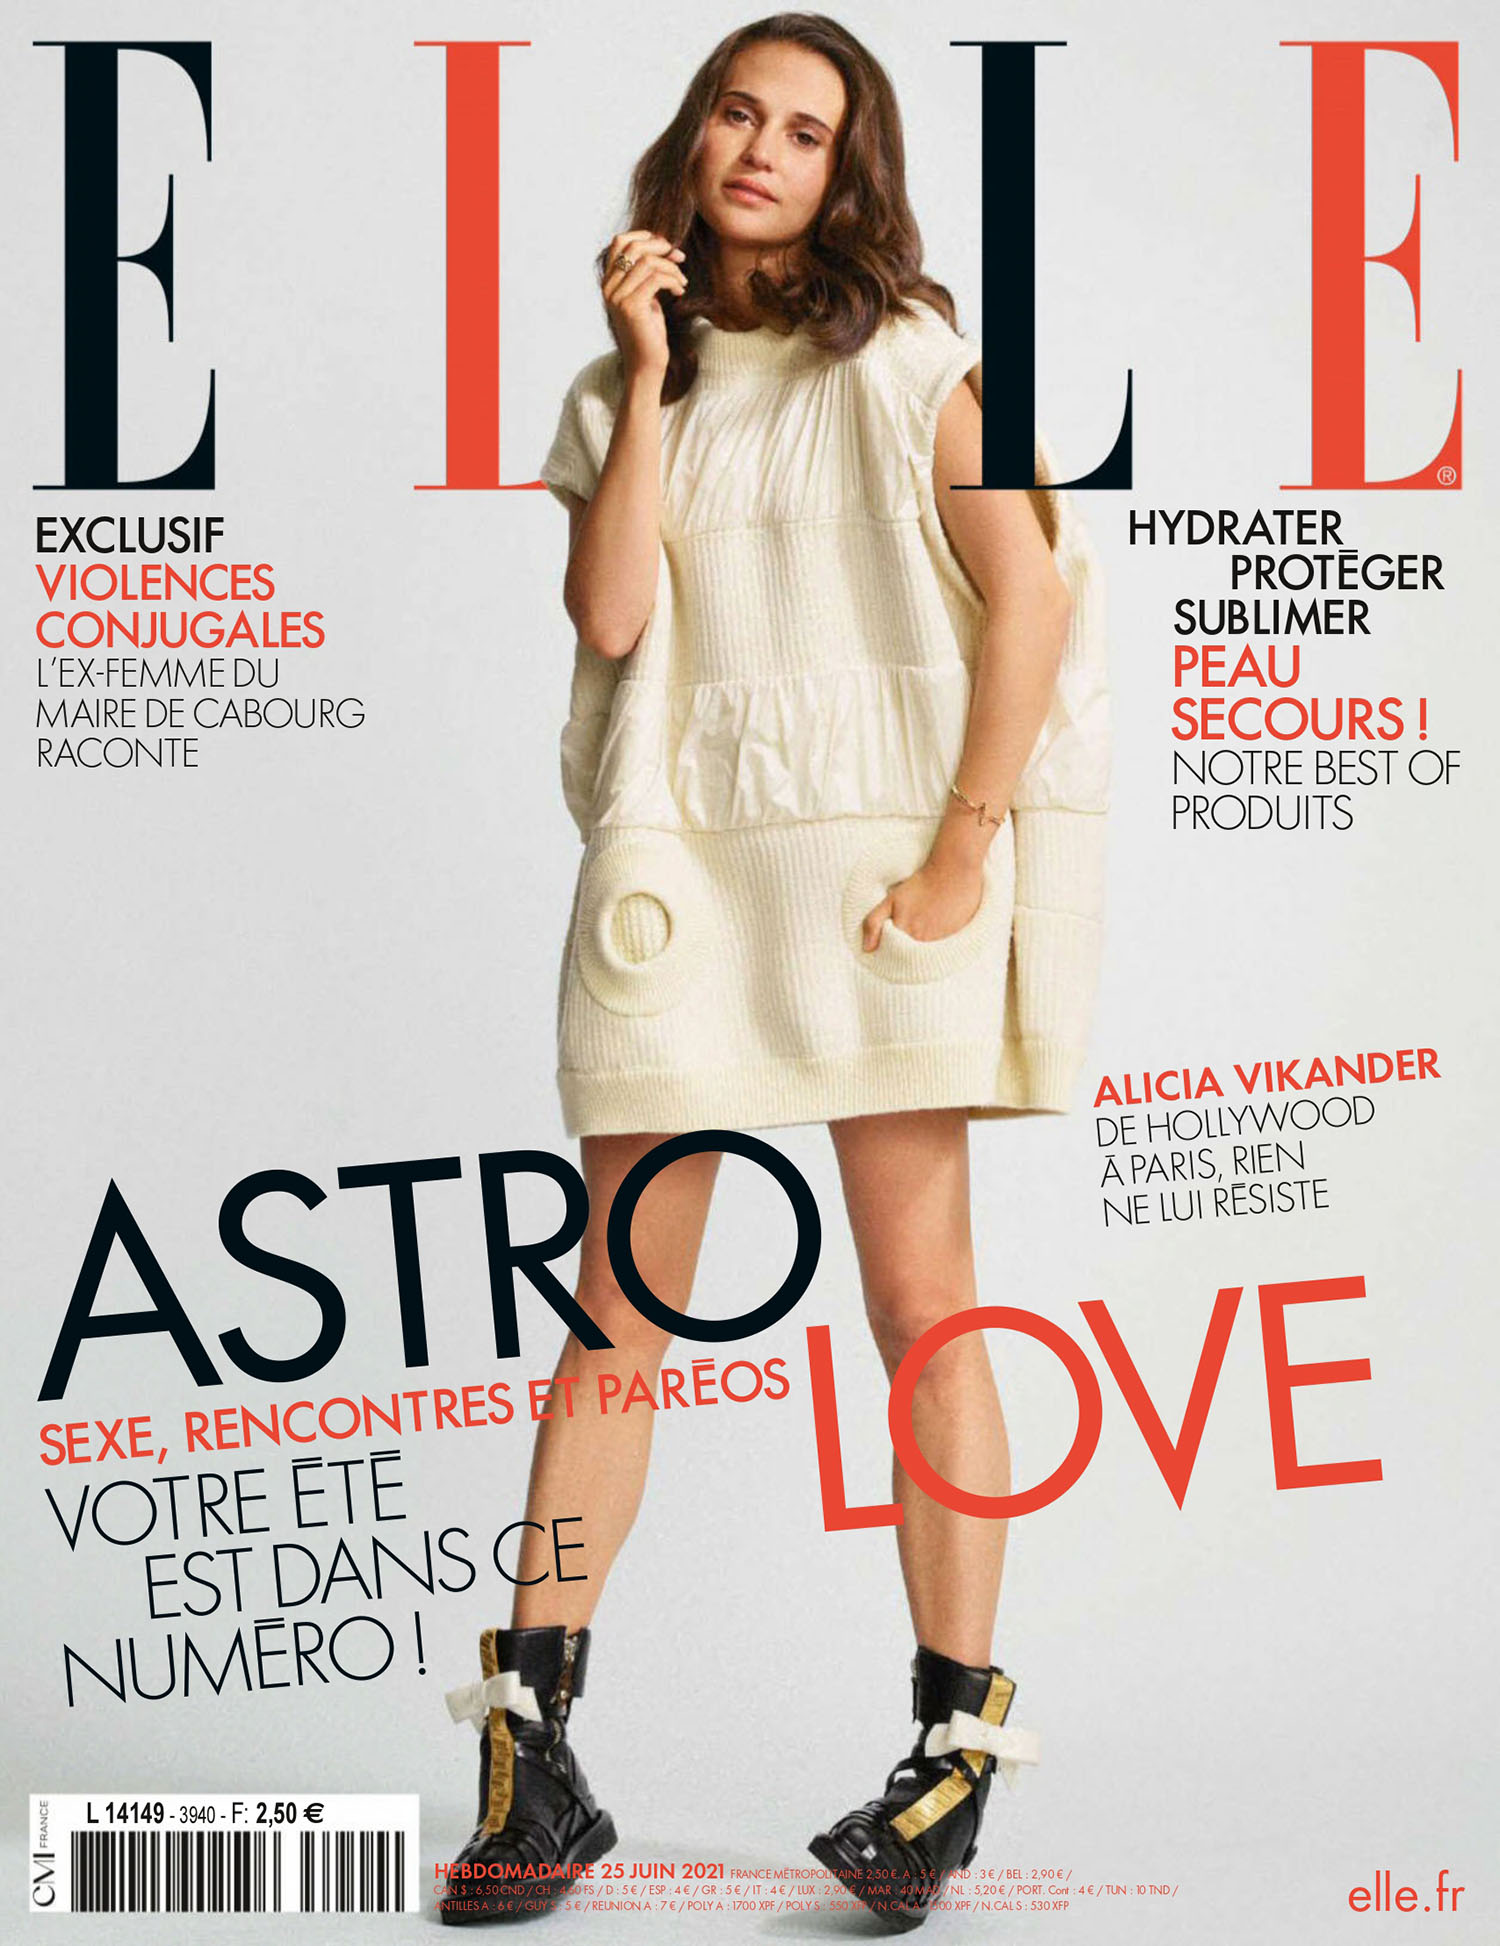 Alicia Vikander covers Elle France June 25th, 2021 by Nico Bustos